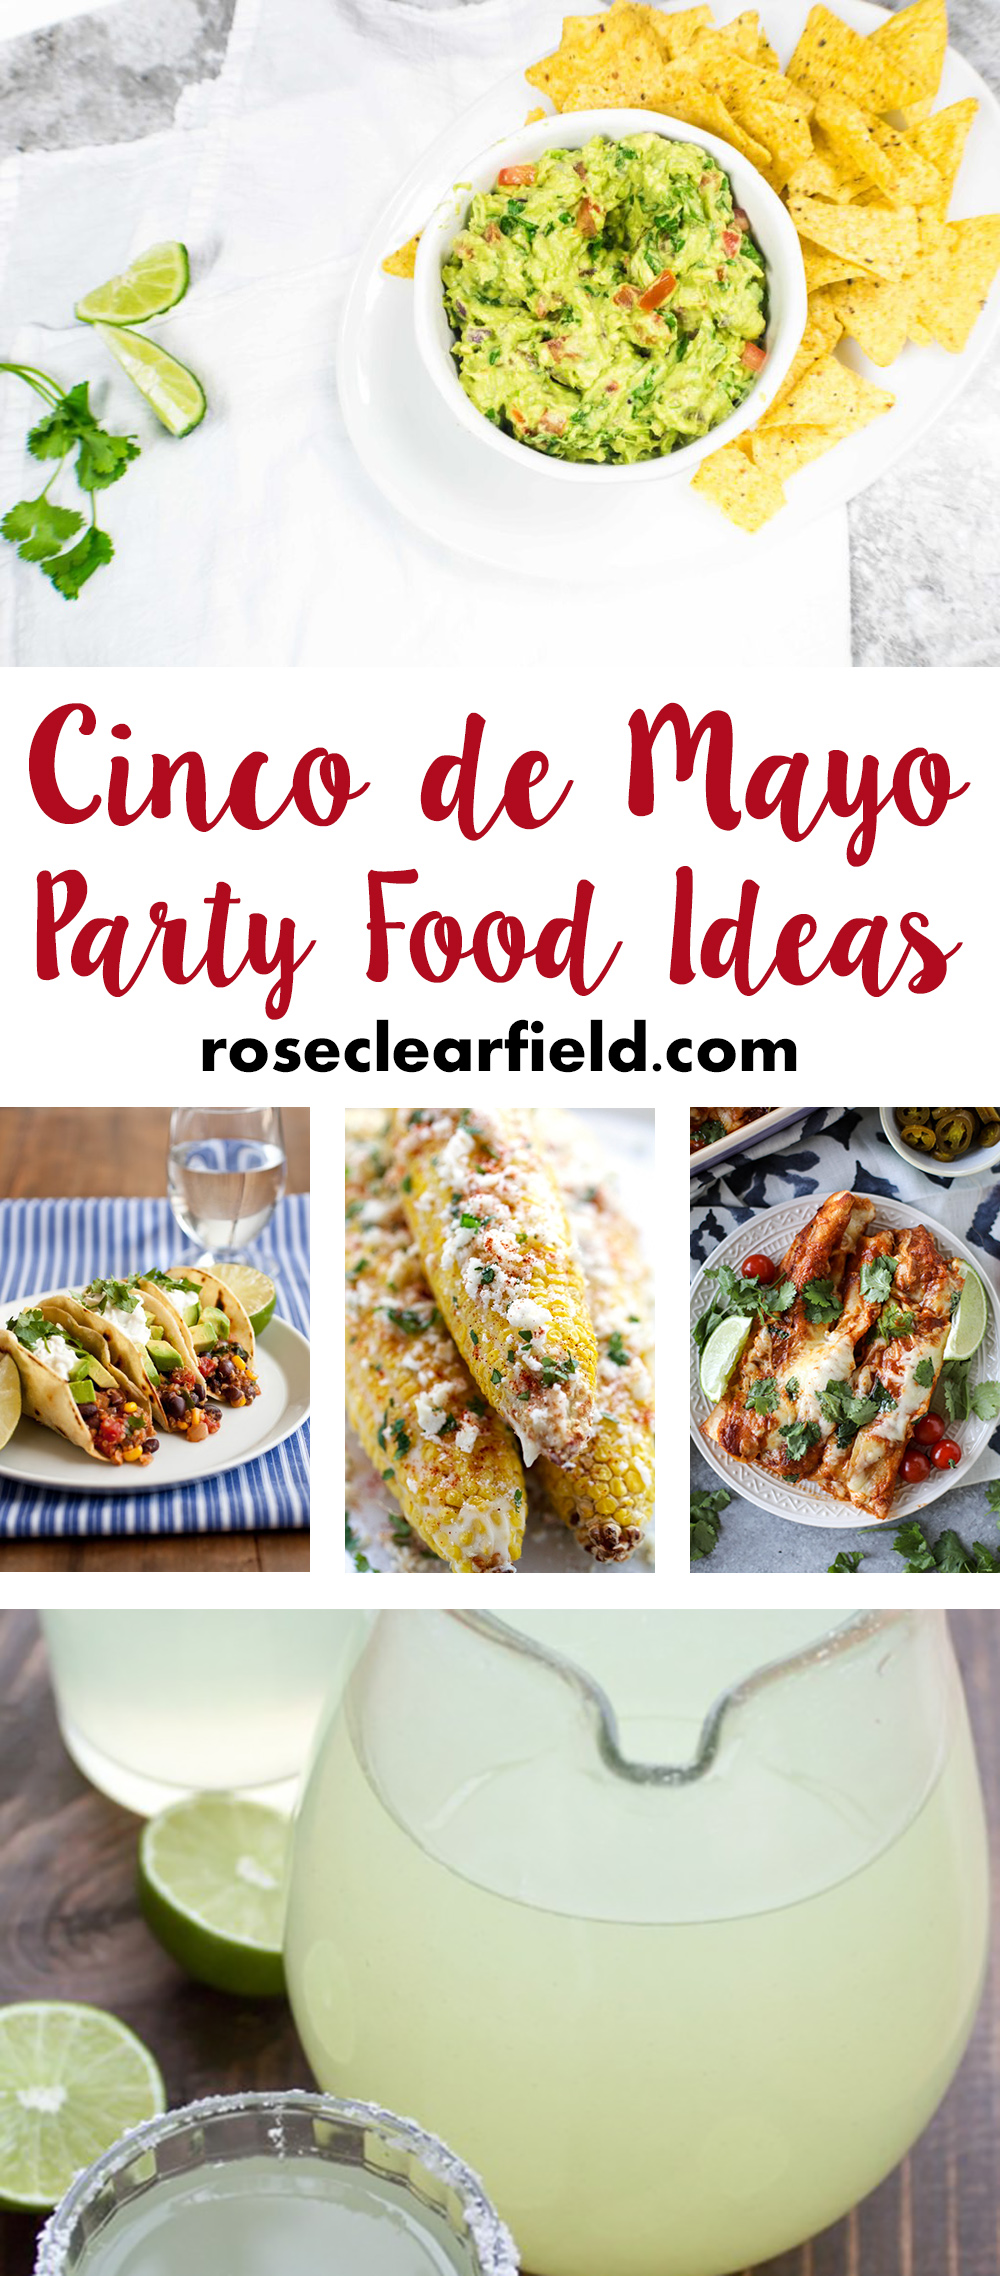 Cinco de Mayo Party Food Ideas | http://www.roseclearfield.com